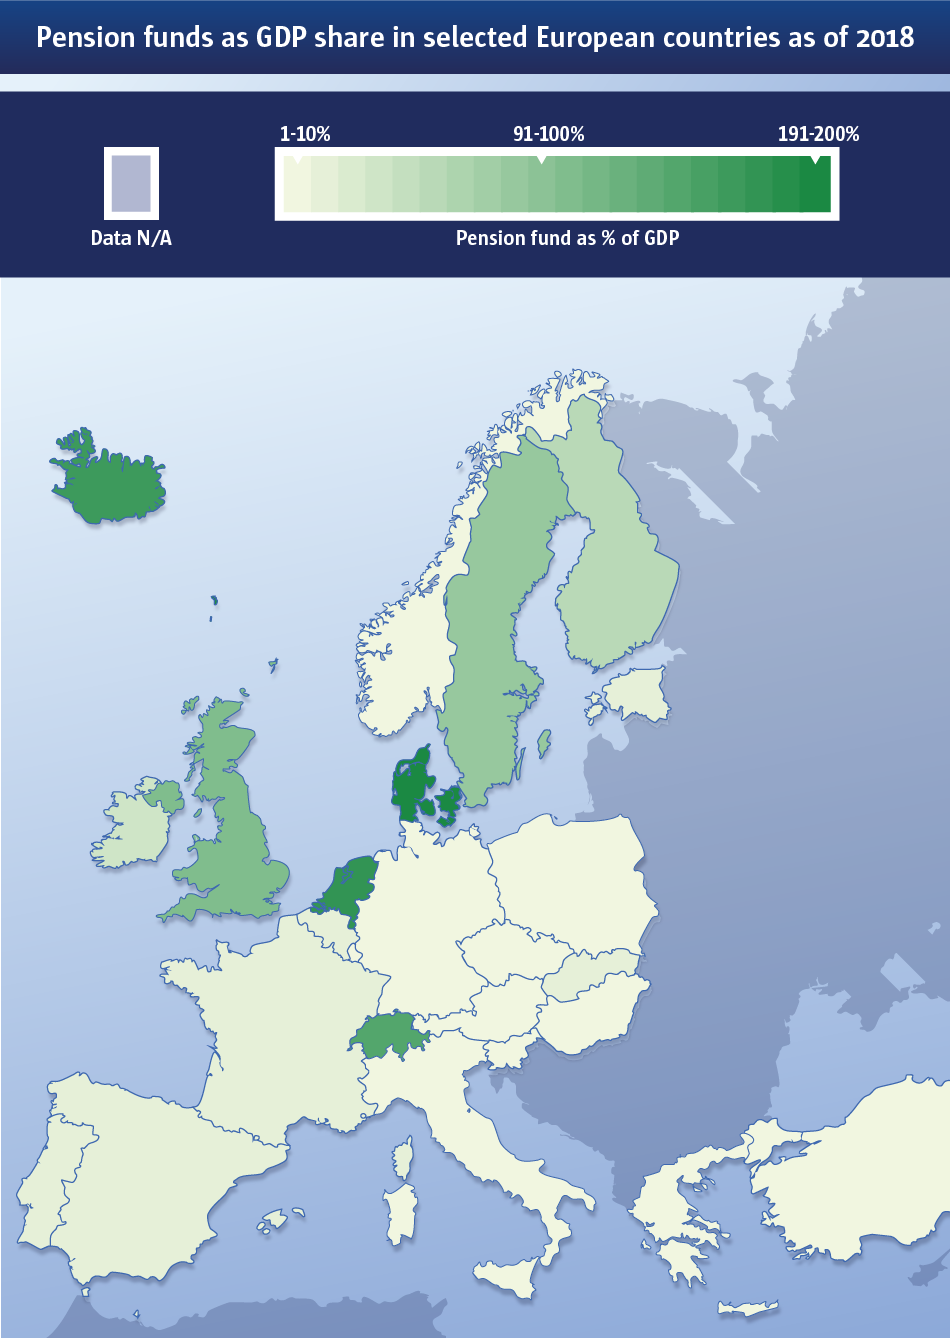 An infographic to show how the United Kingdom has over 91-100% pension fund as of percentage of GDP in 2018.